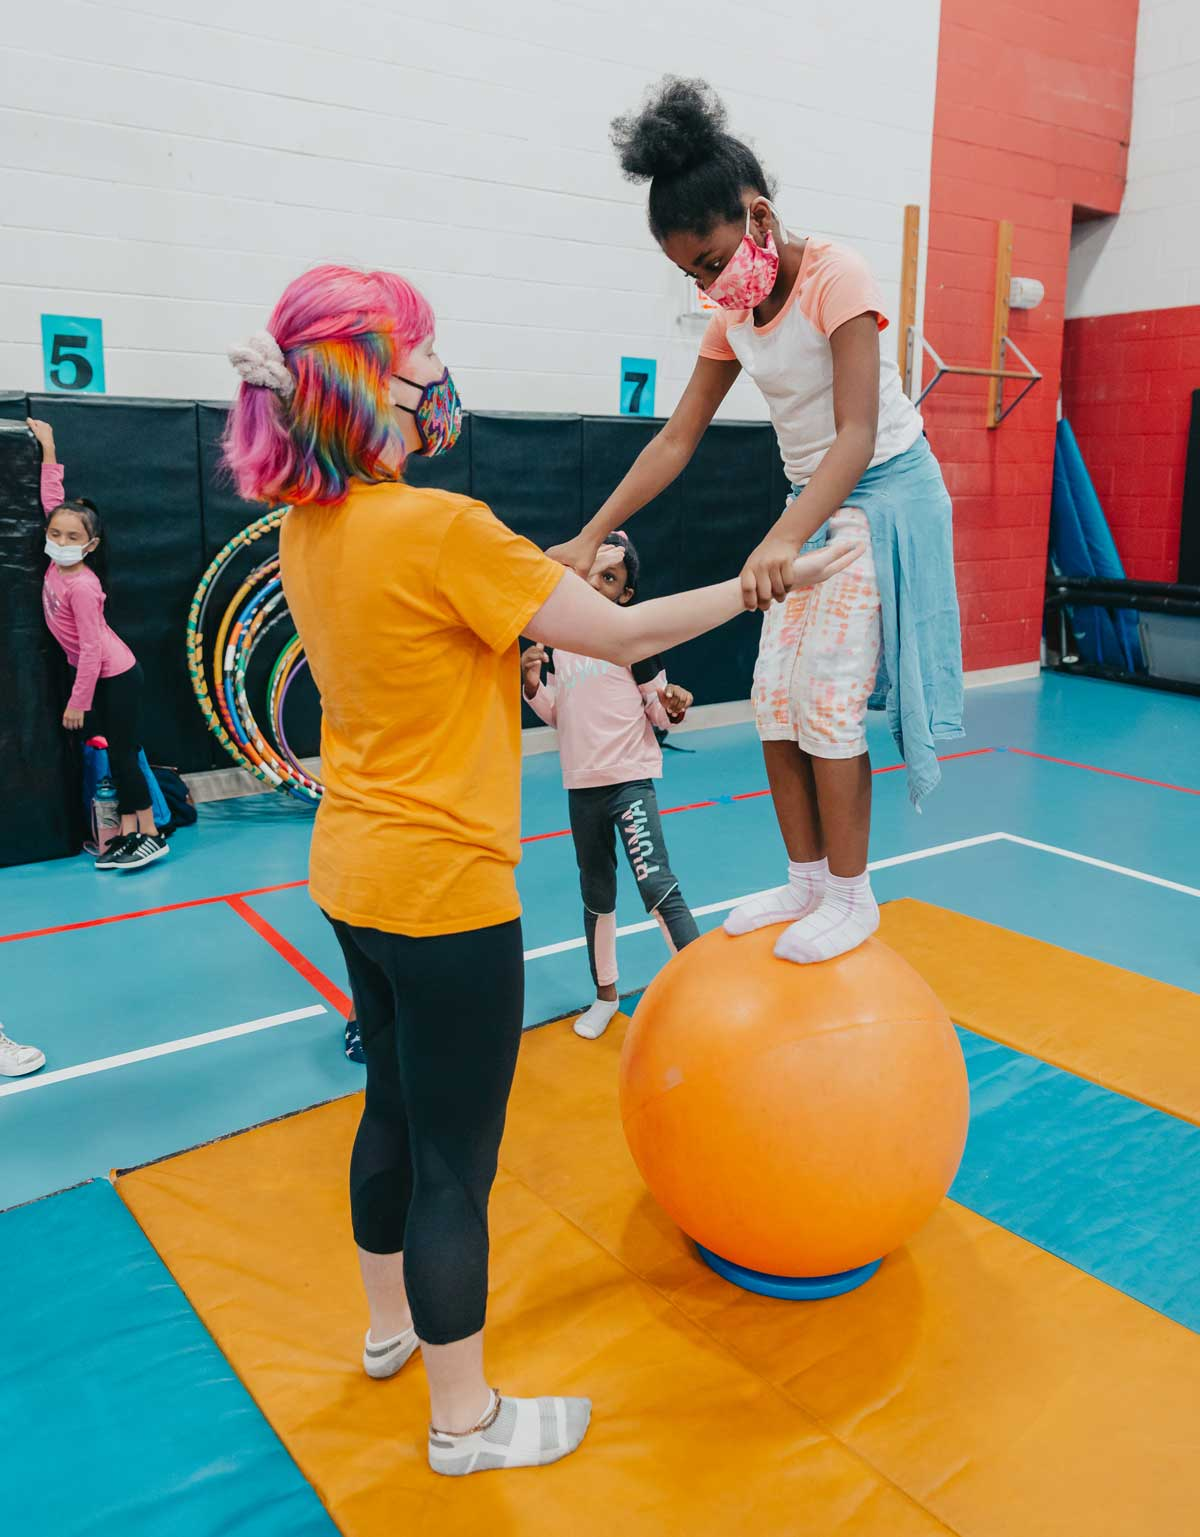 student standing on ball with help